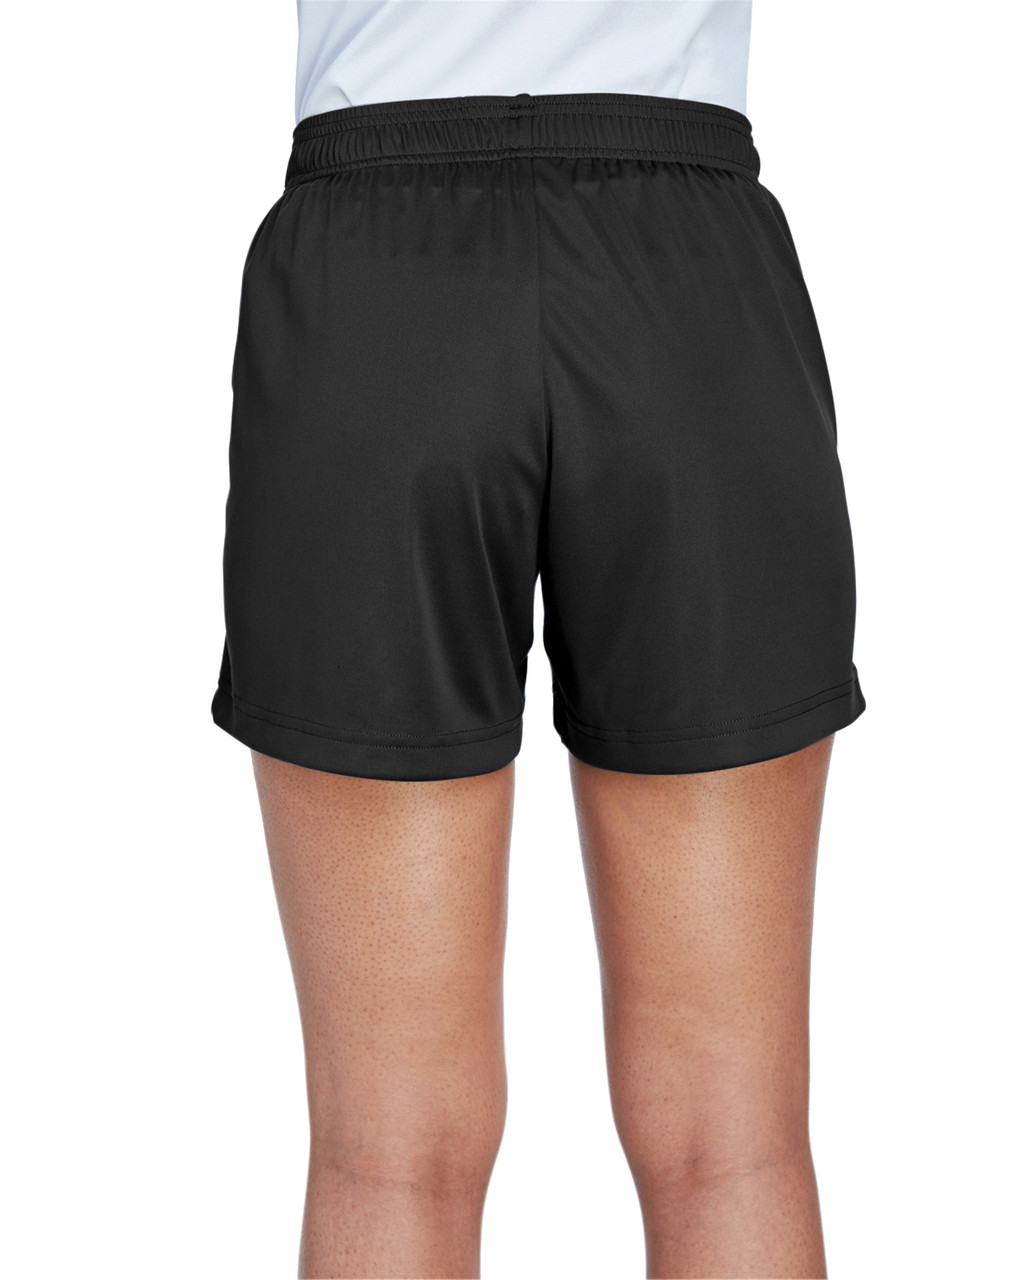 Black - Back, TT11SHW Team 365 Ladies' Zone Performance Short | T-shirt.ca